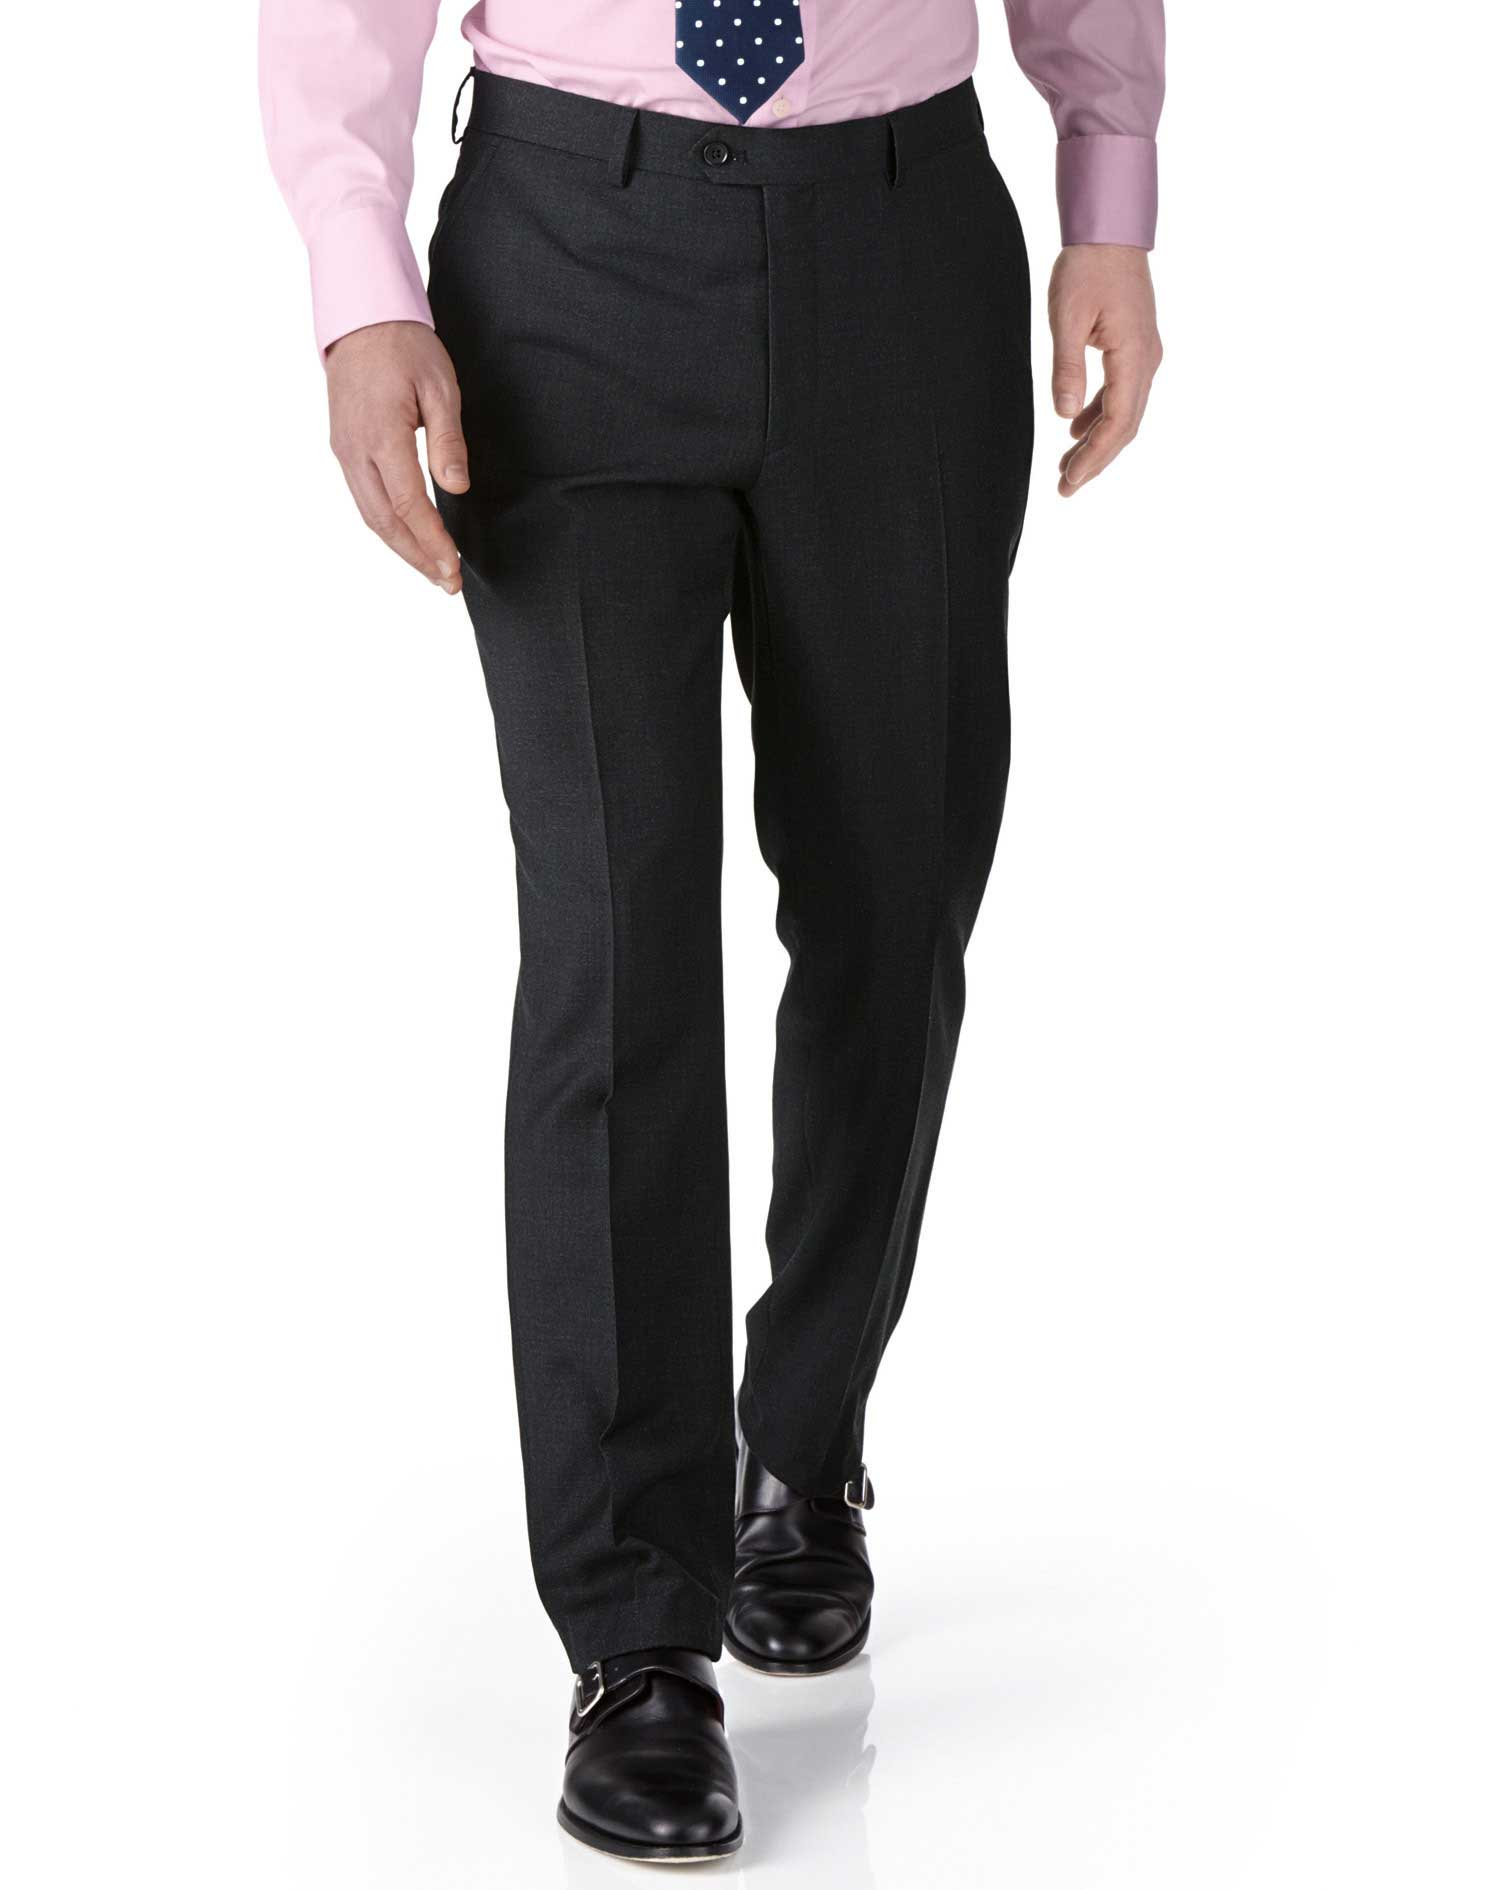 Charcoal Extra Slim Fit Twill Business Suit Trouser Size W30 L38 by Charles Tyrwhitt